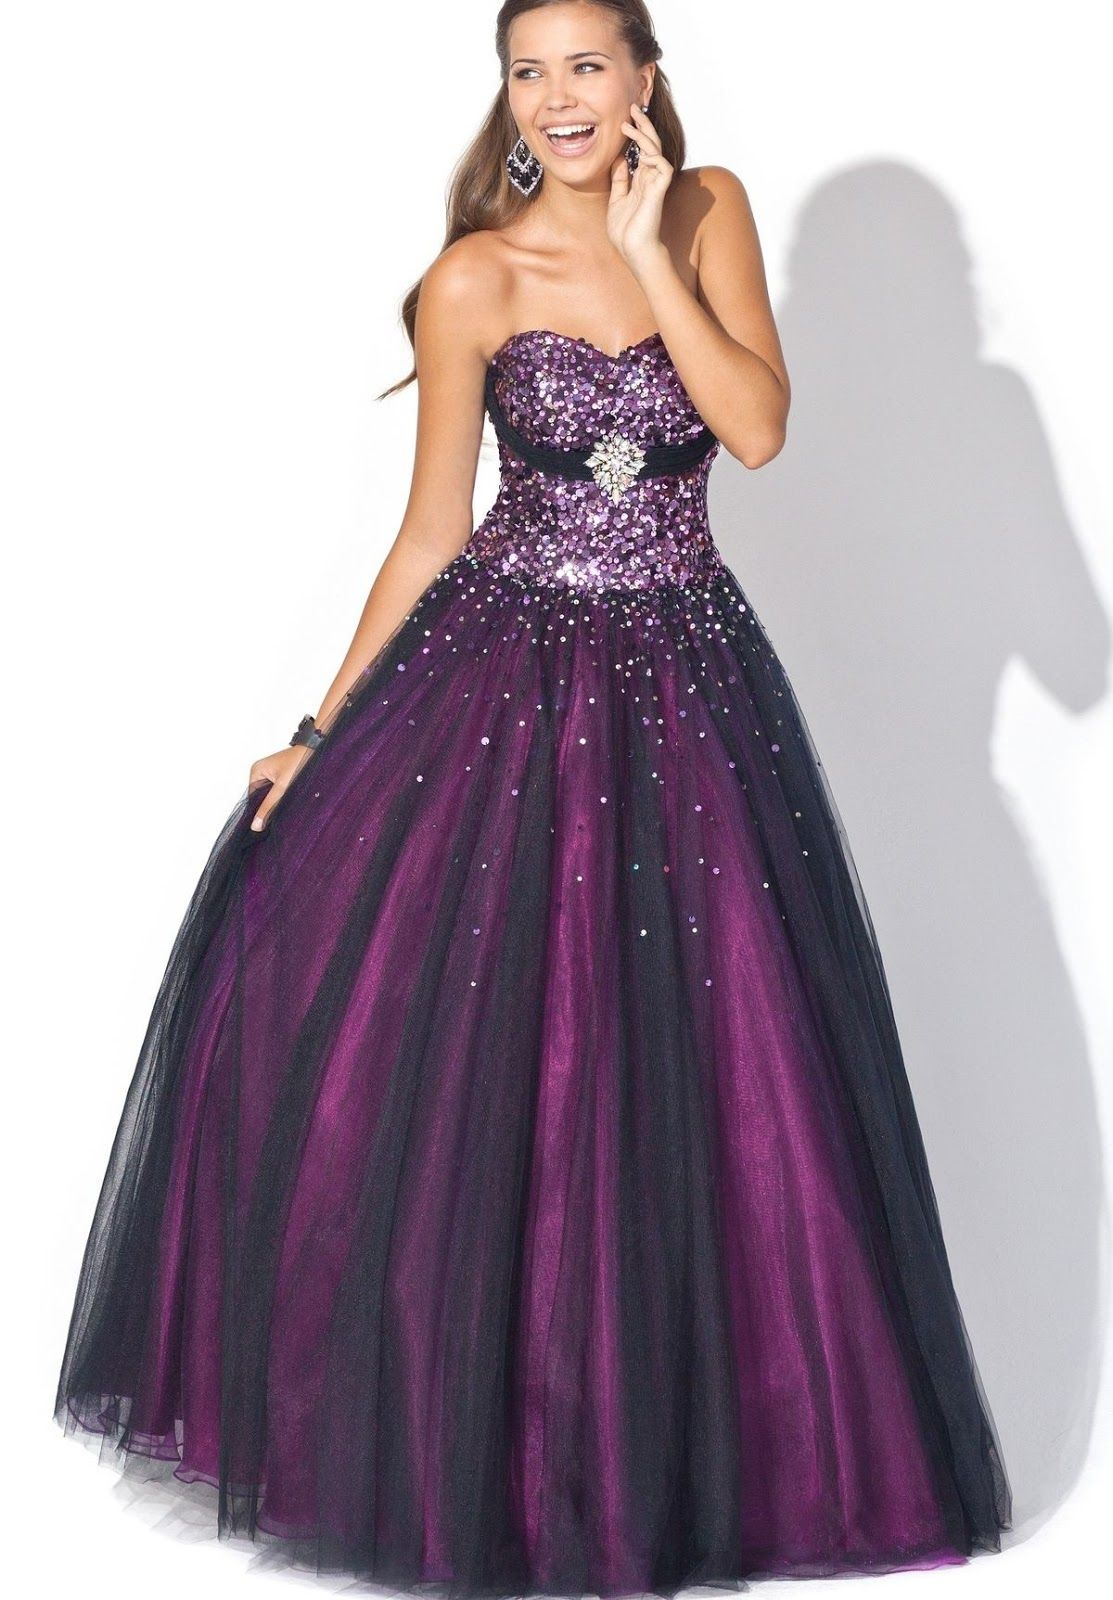 long prom ball gown for women wear | Dresses and Gowns <3 ...